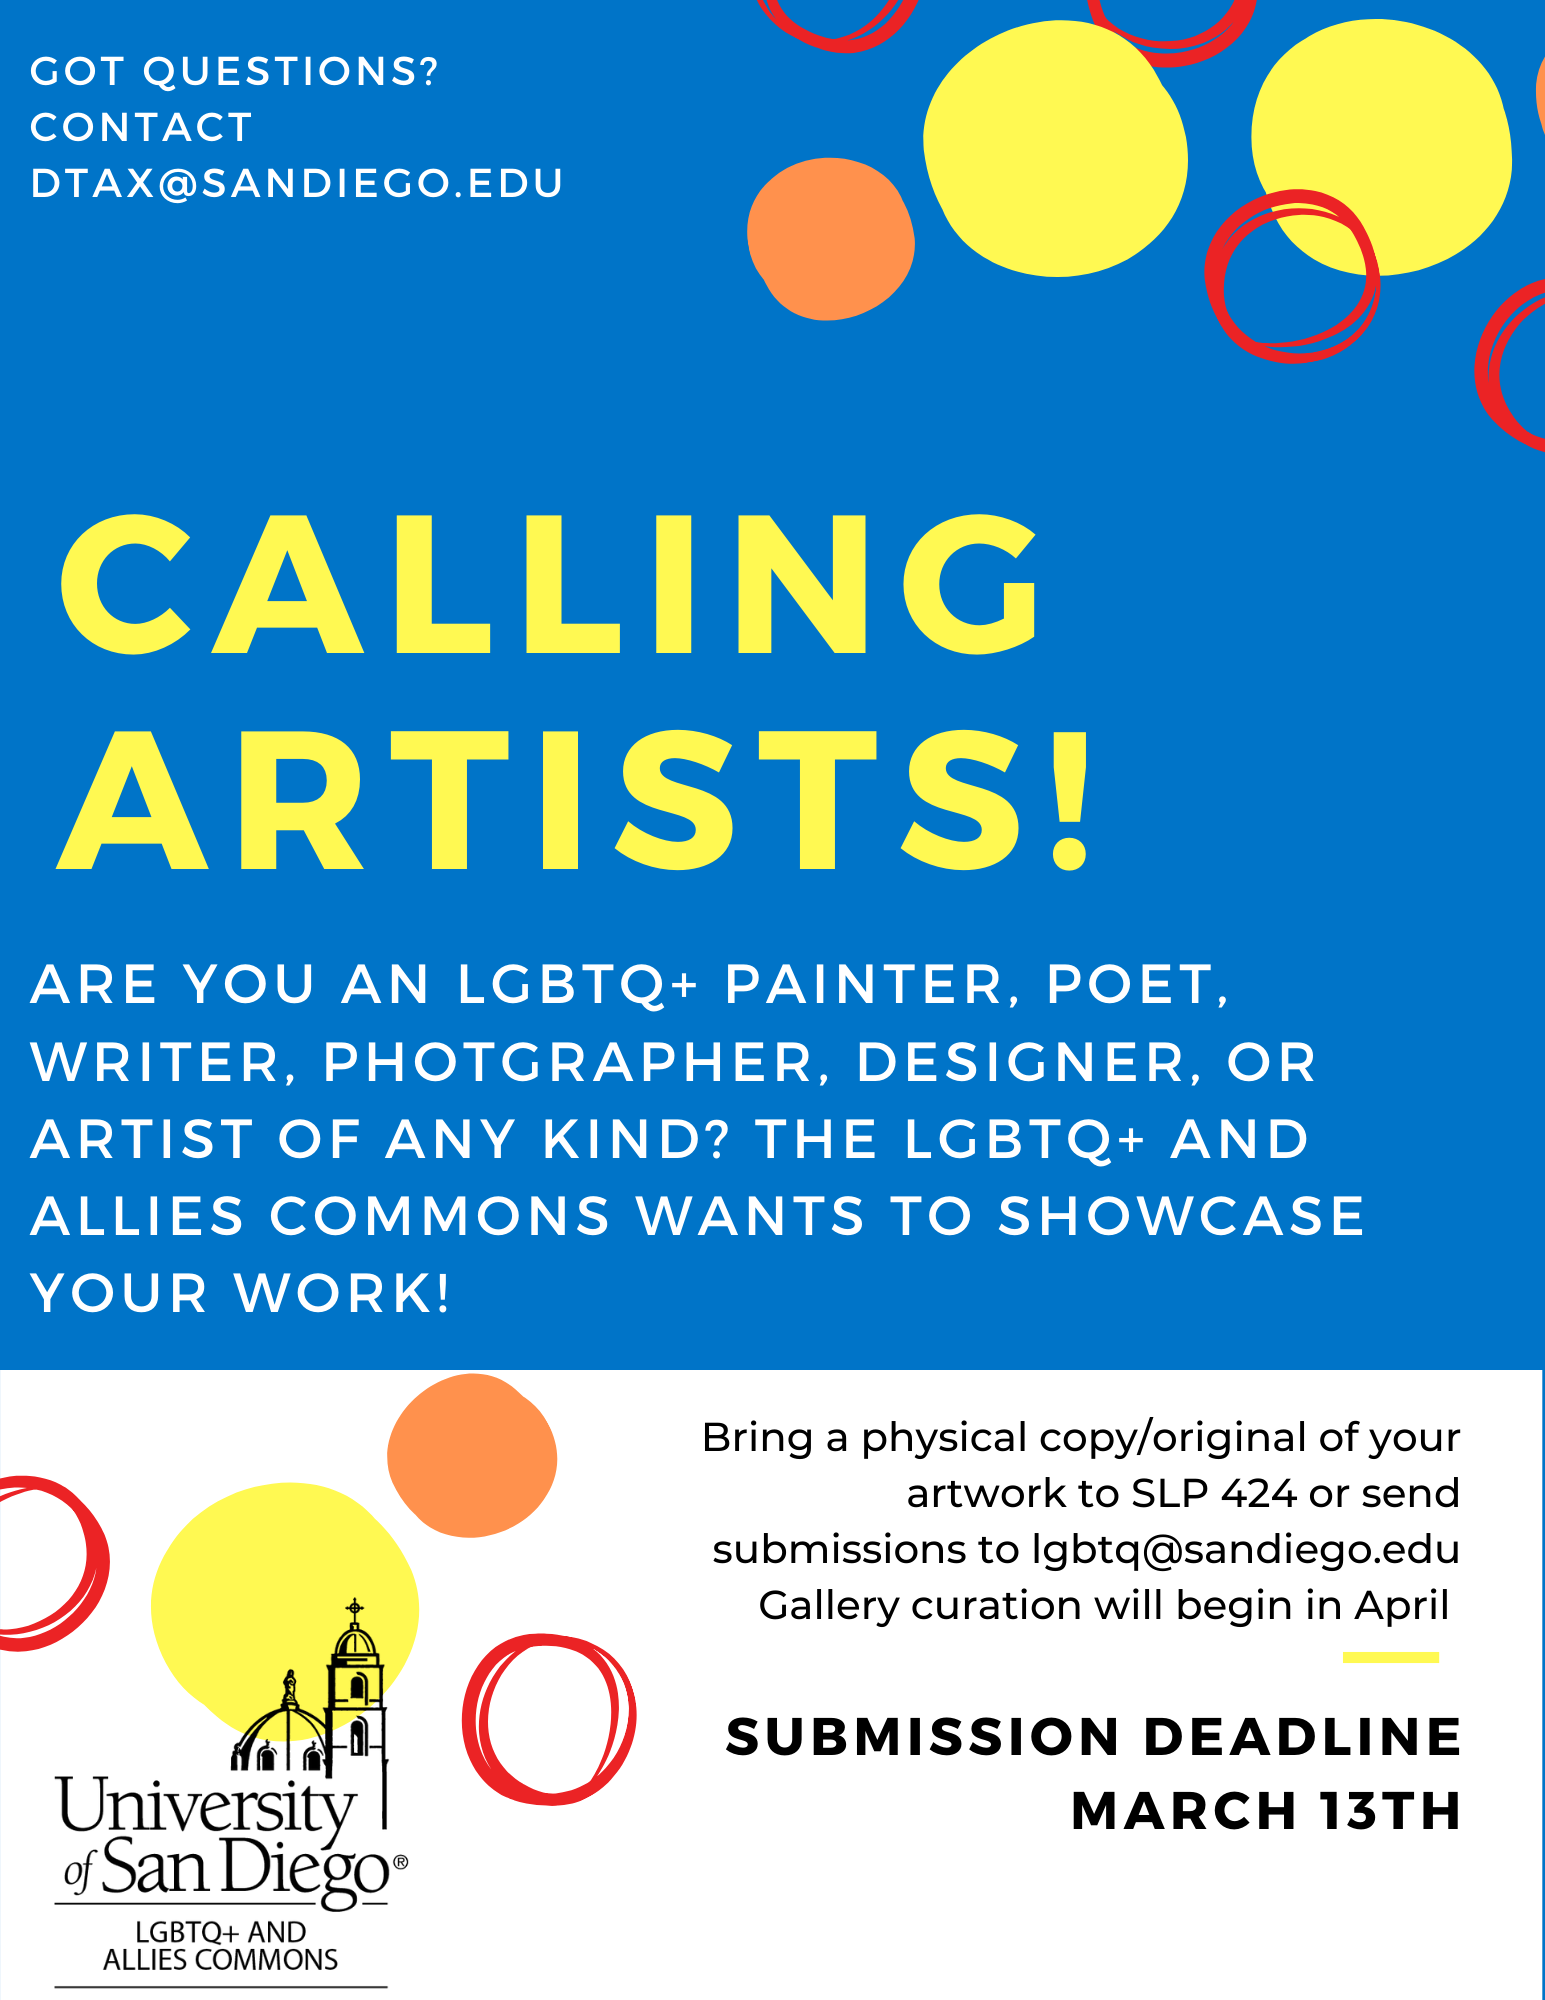 Are you an LGBTQ+ painter, poet, writer, photgrapher, designer, or artist of any kind? THe lgbtq+ and allies commons wants to showcase your work!